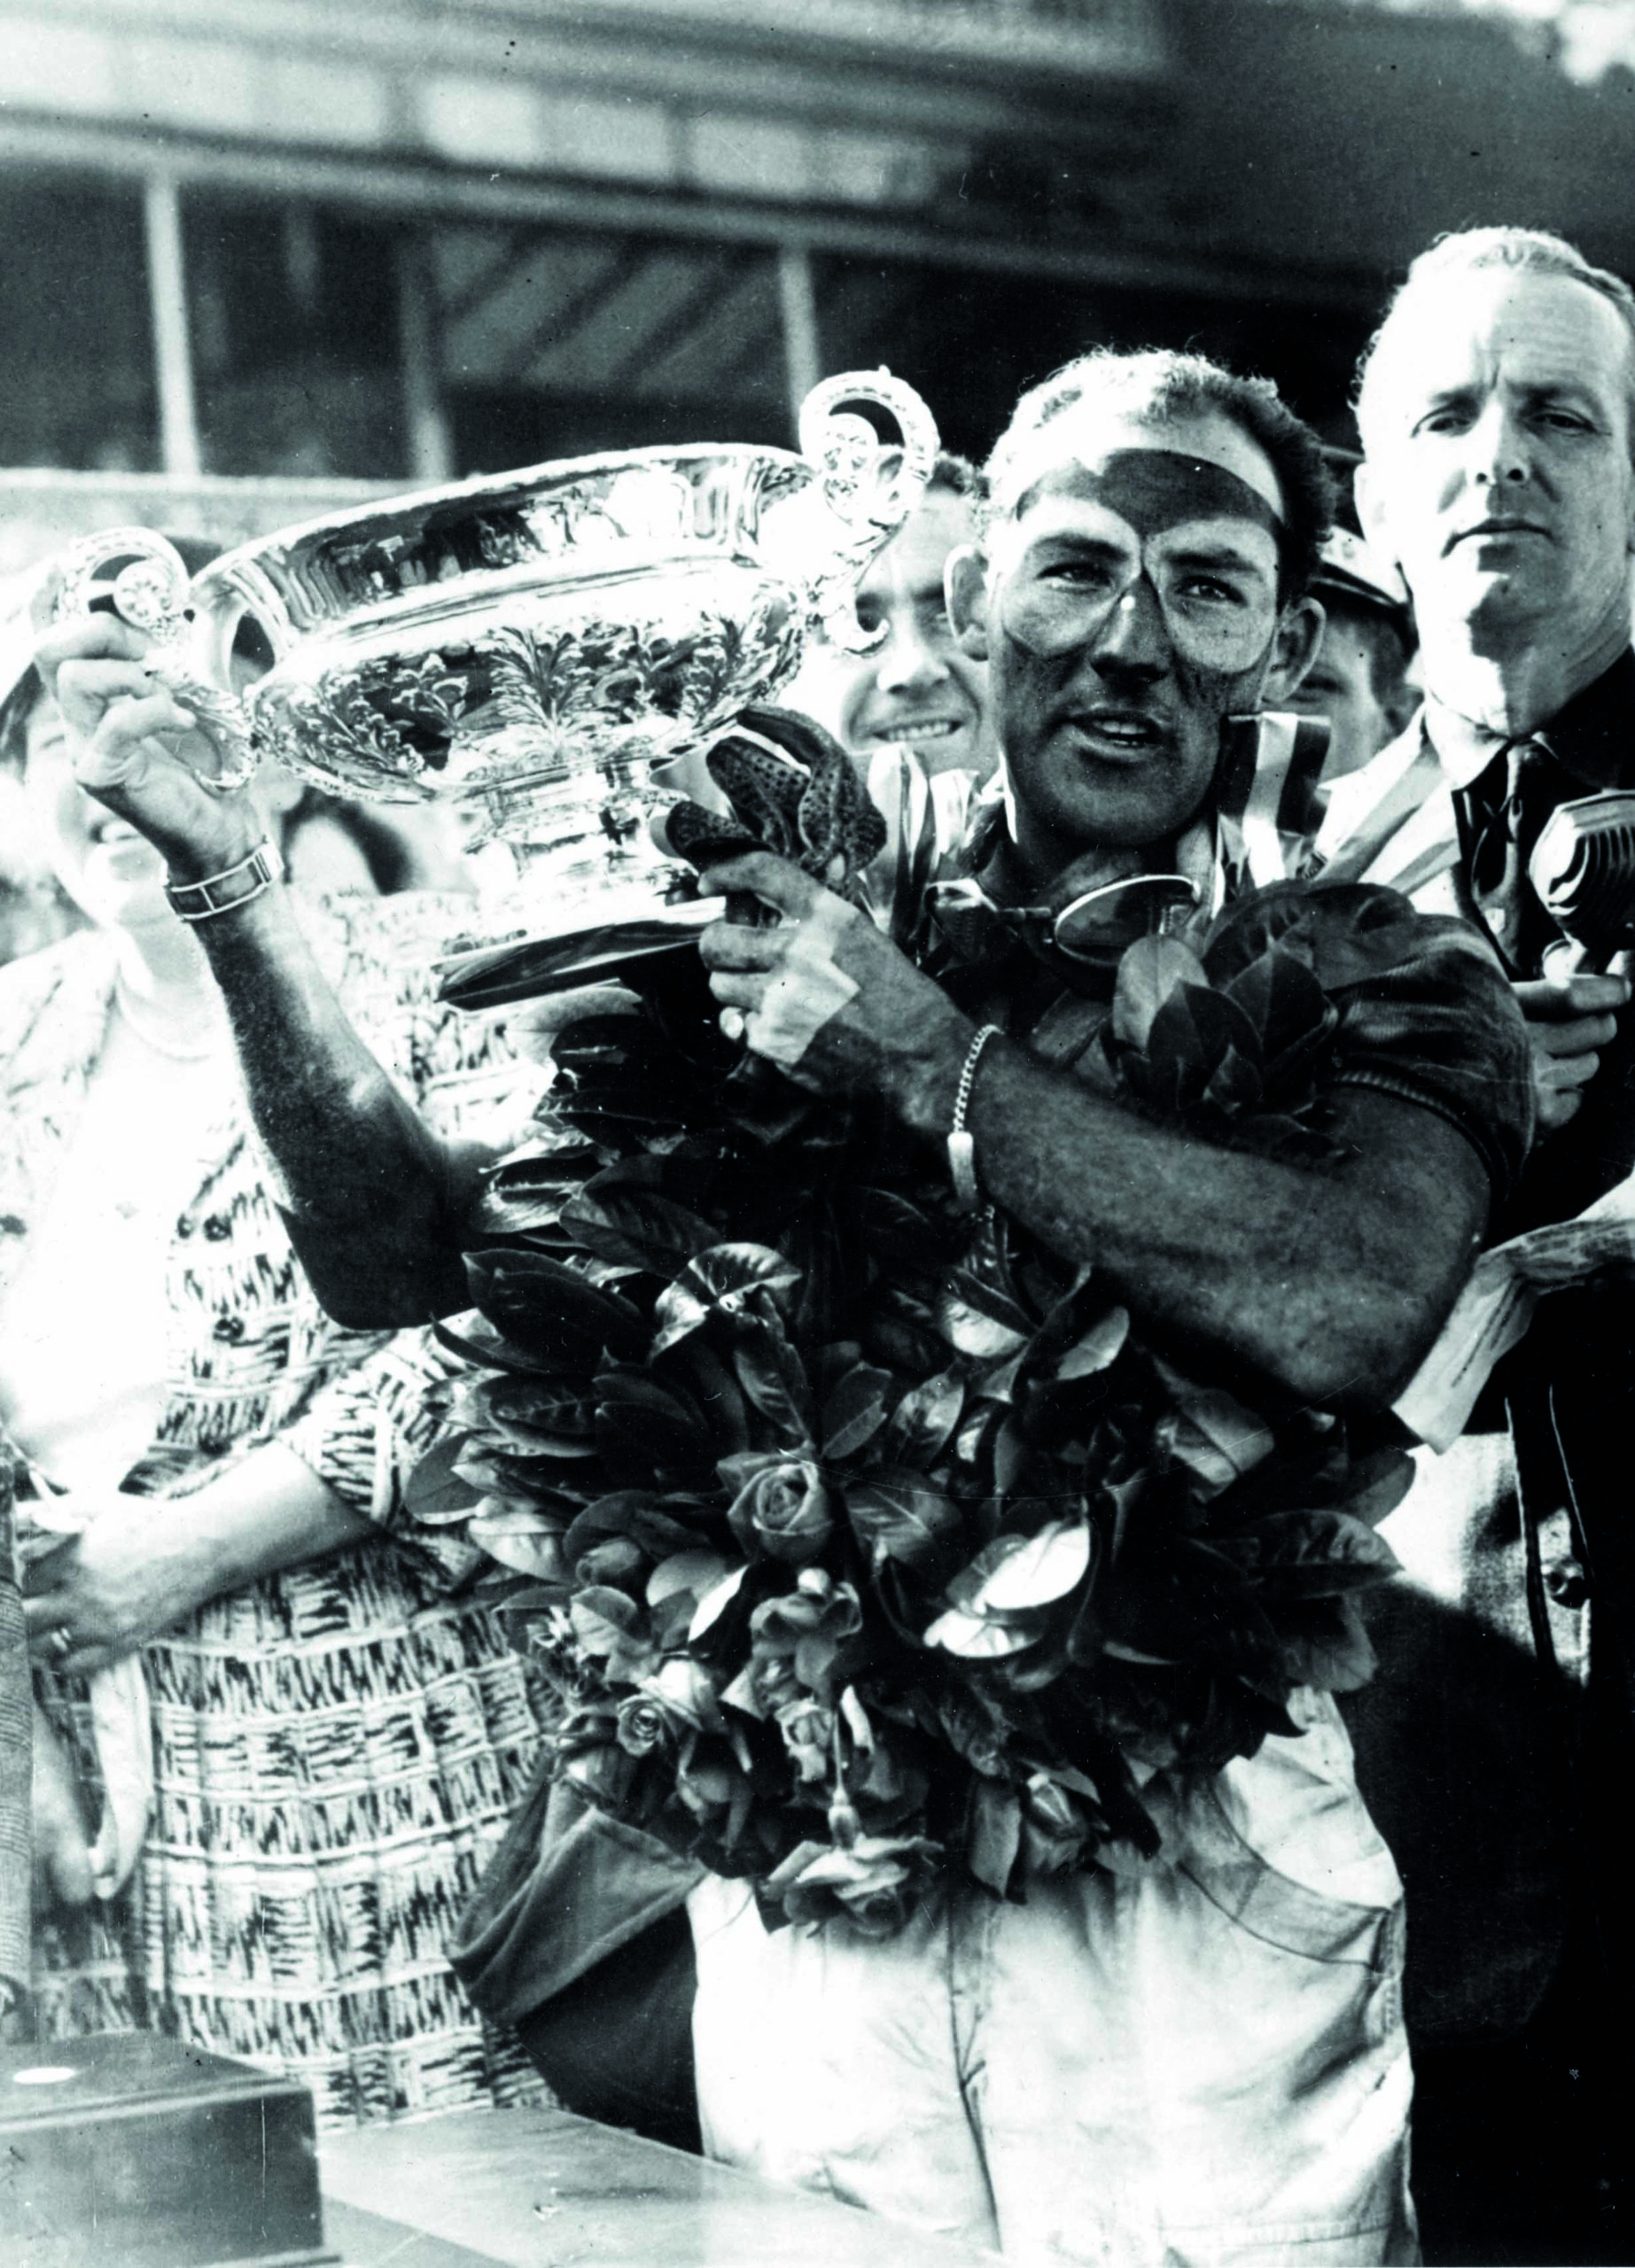 Stirling-Moss-raises-the-winning-trophy-from-the-1955-British-Grand-Prix-at-Aintree